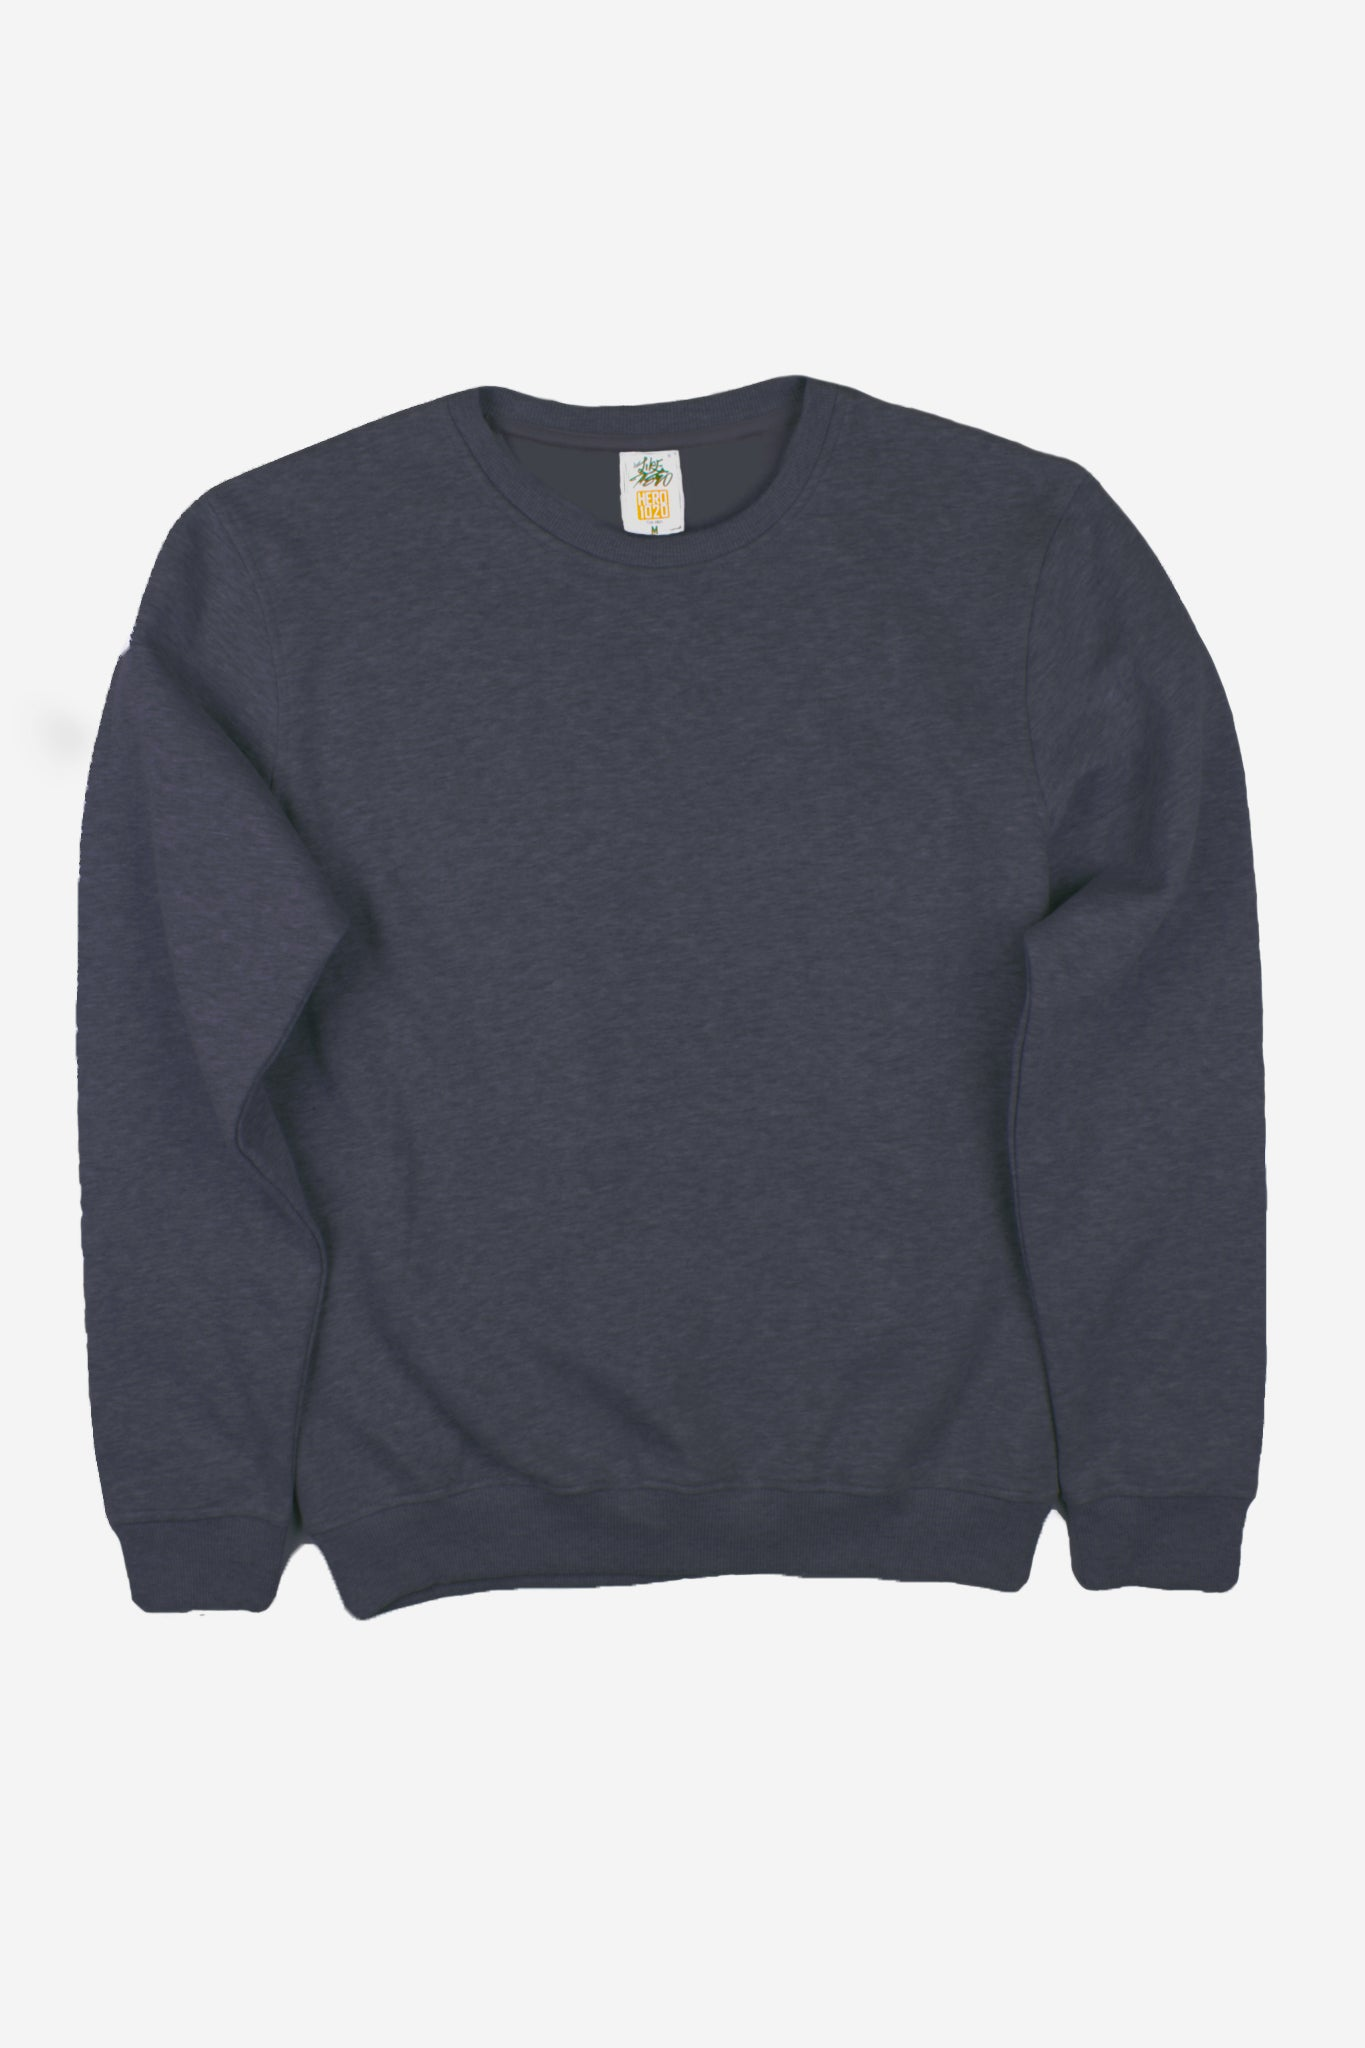 HERO-1020 Unisex Youth Blank Crewneck Sweatshirt - Dark Heather